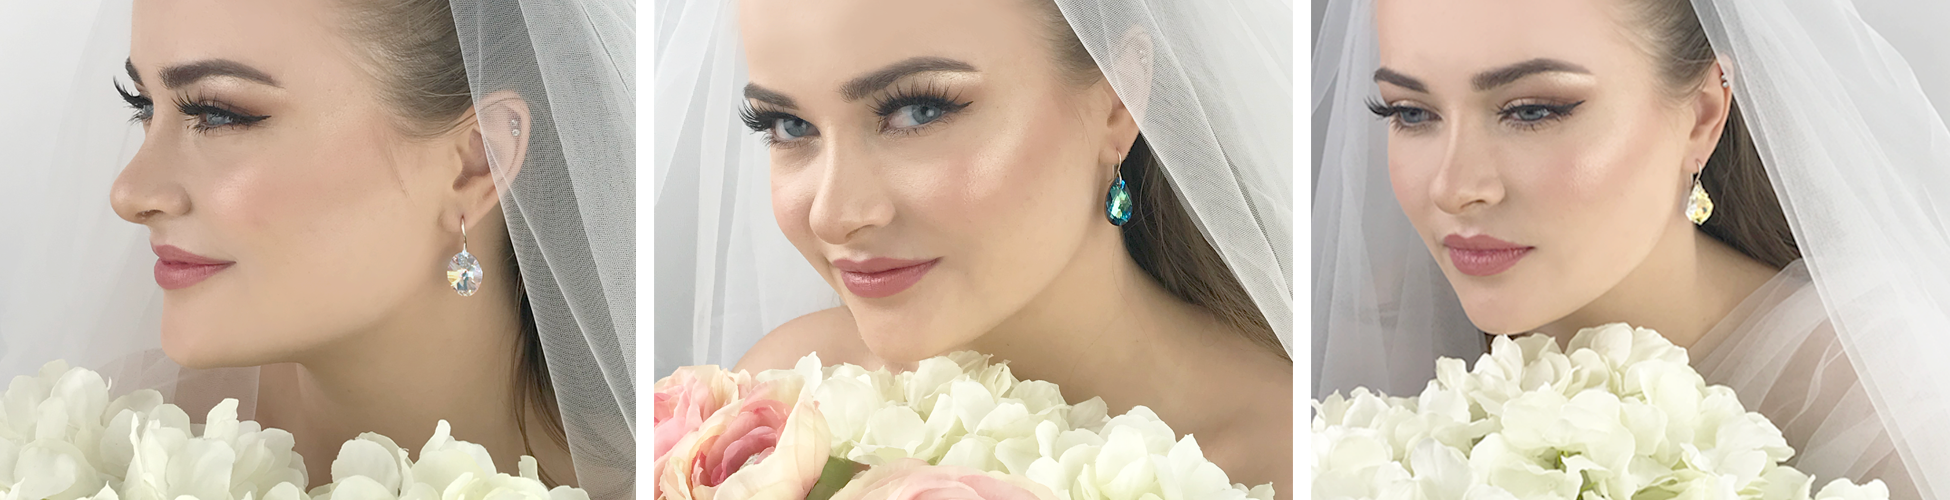 Bridal Shows Bay Area 2019: Featuring Bridal Jewelry Handmade in California by MONOLISA